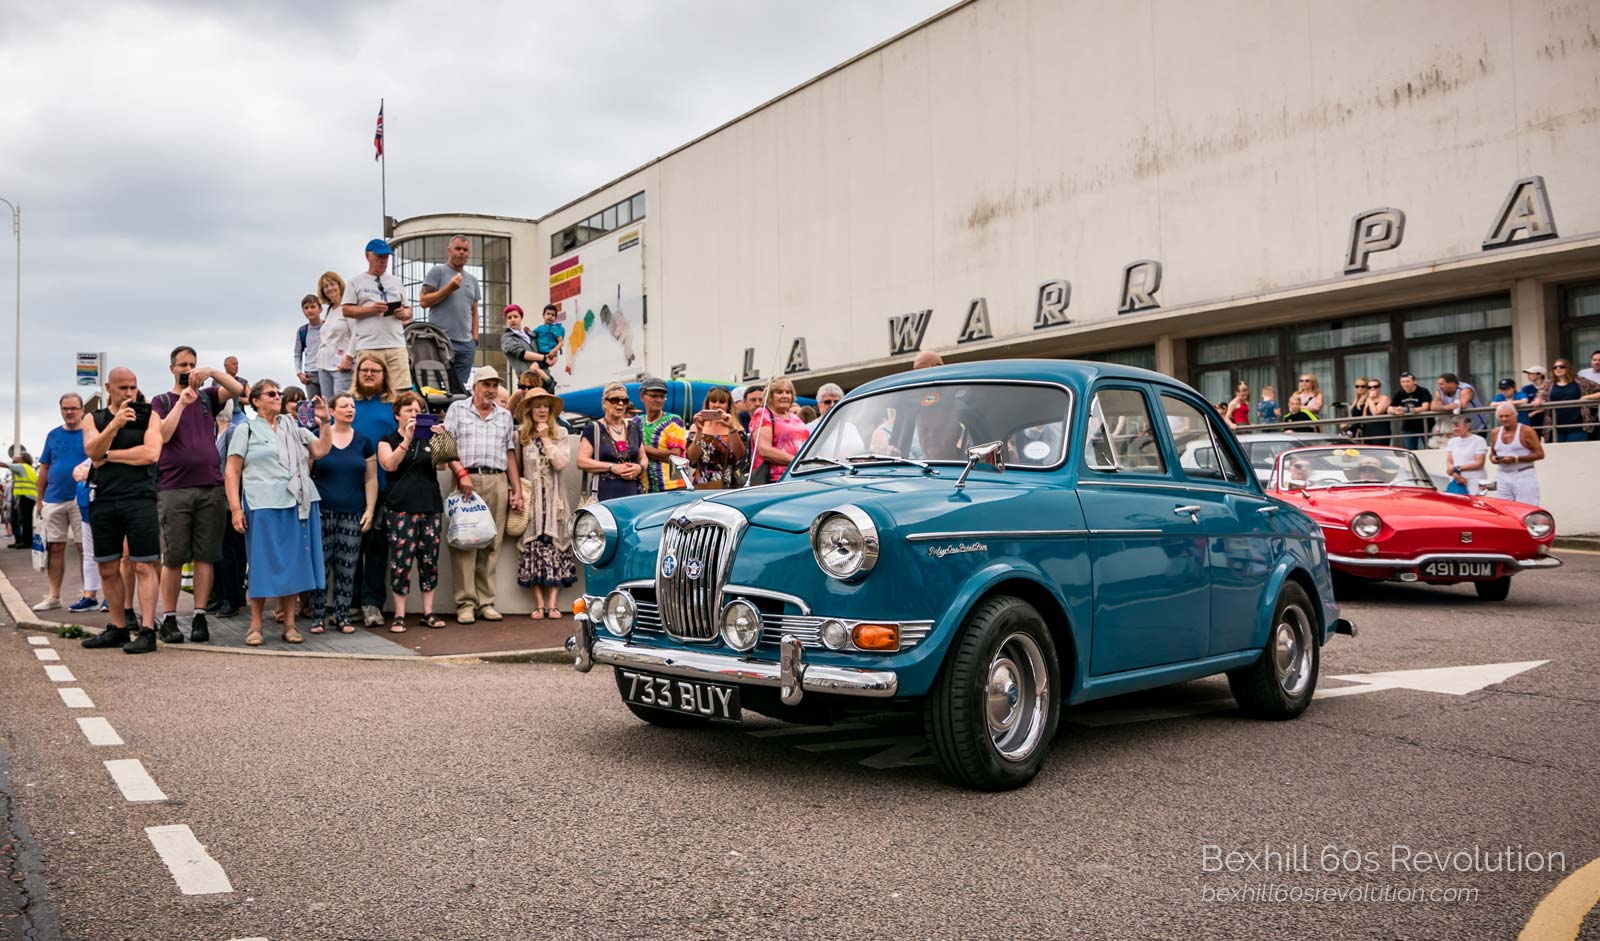 classic cars at the Bexhill 60s Revolution